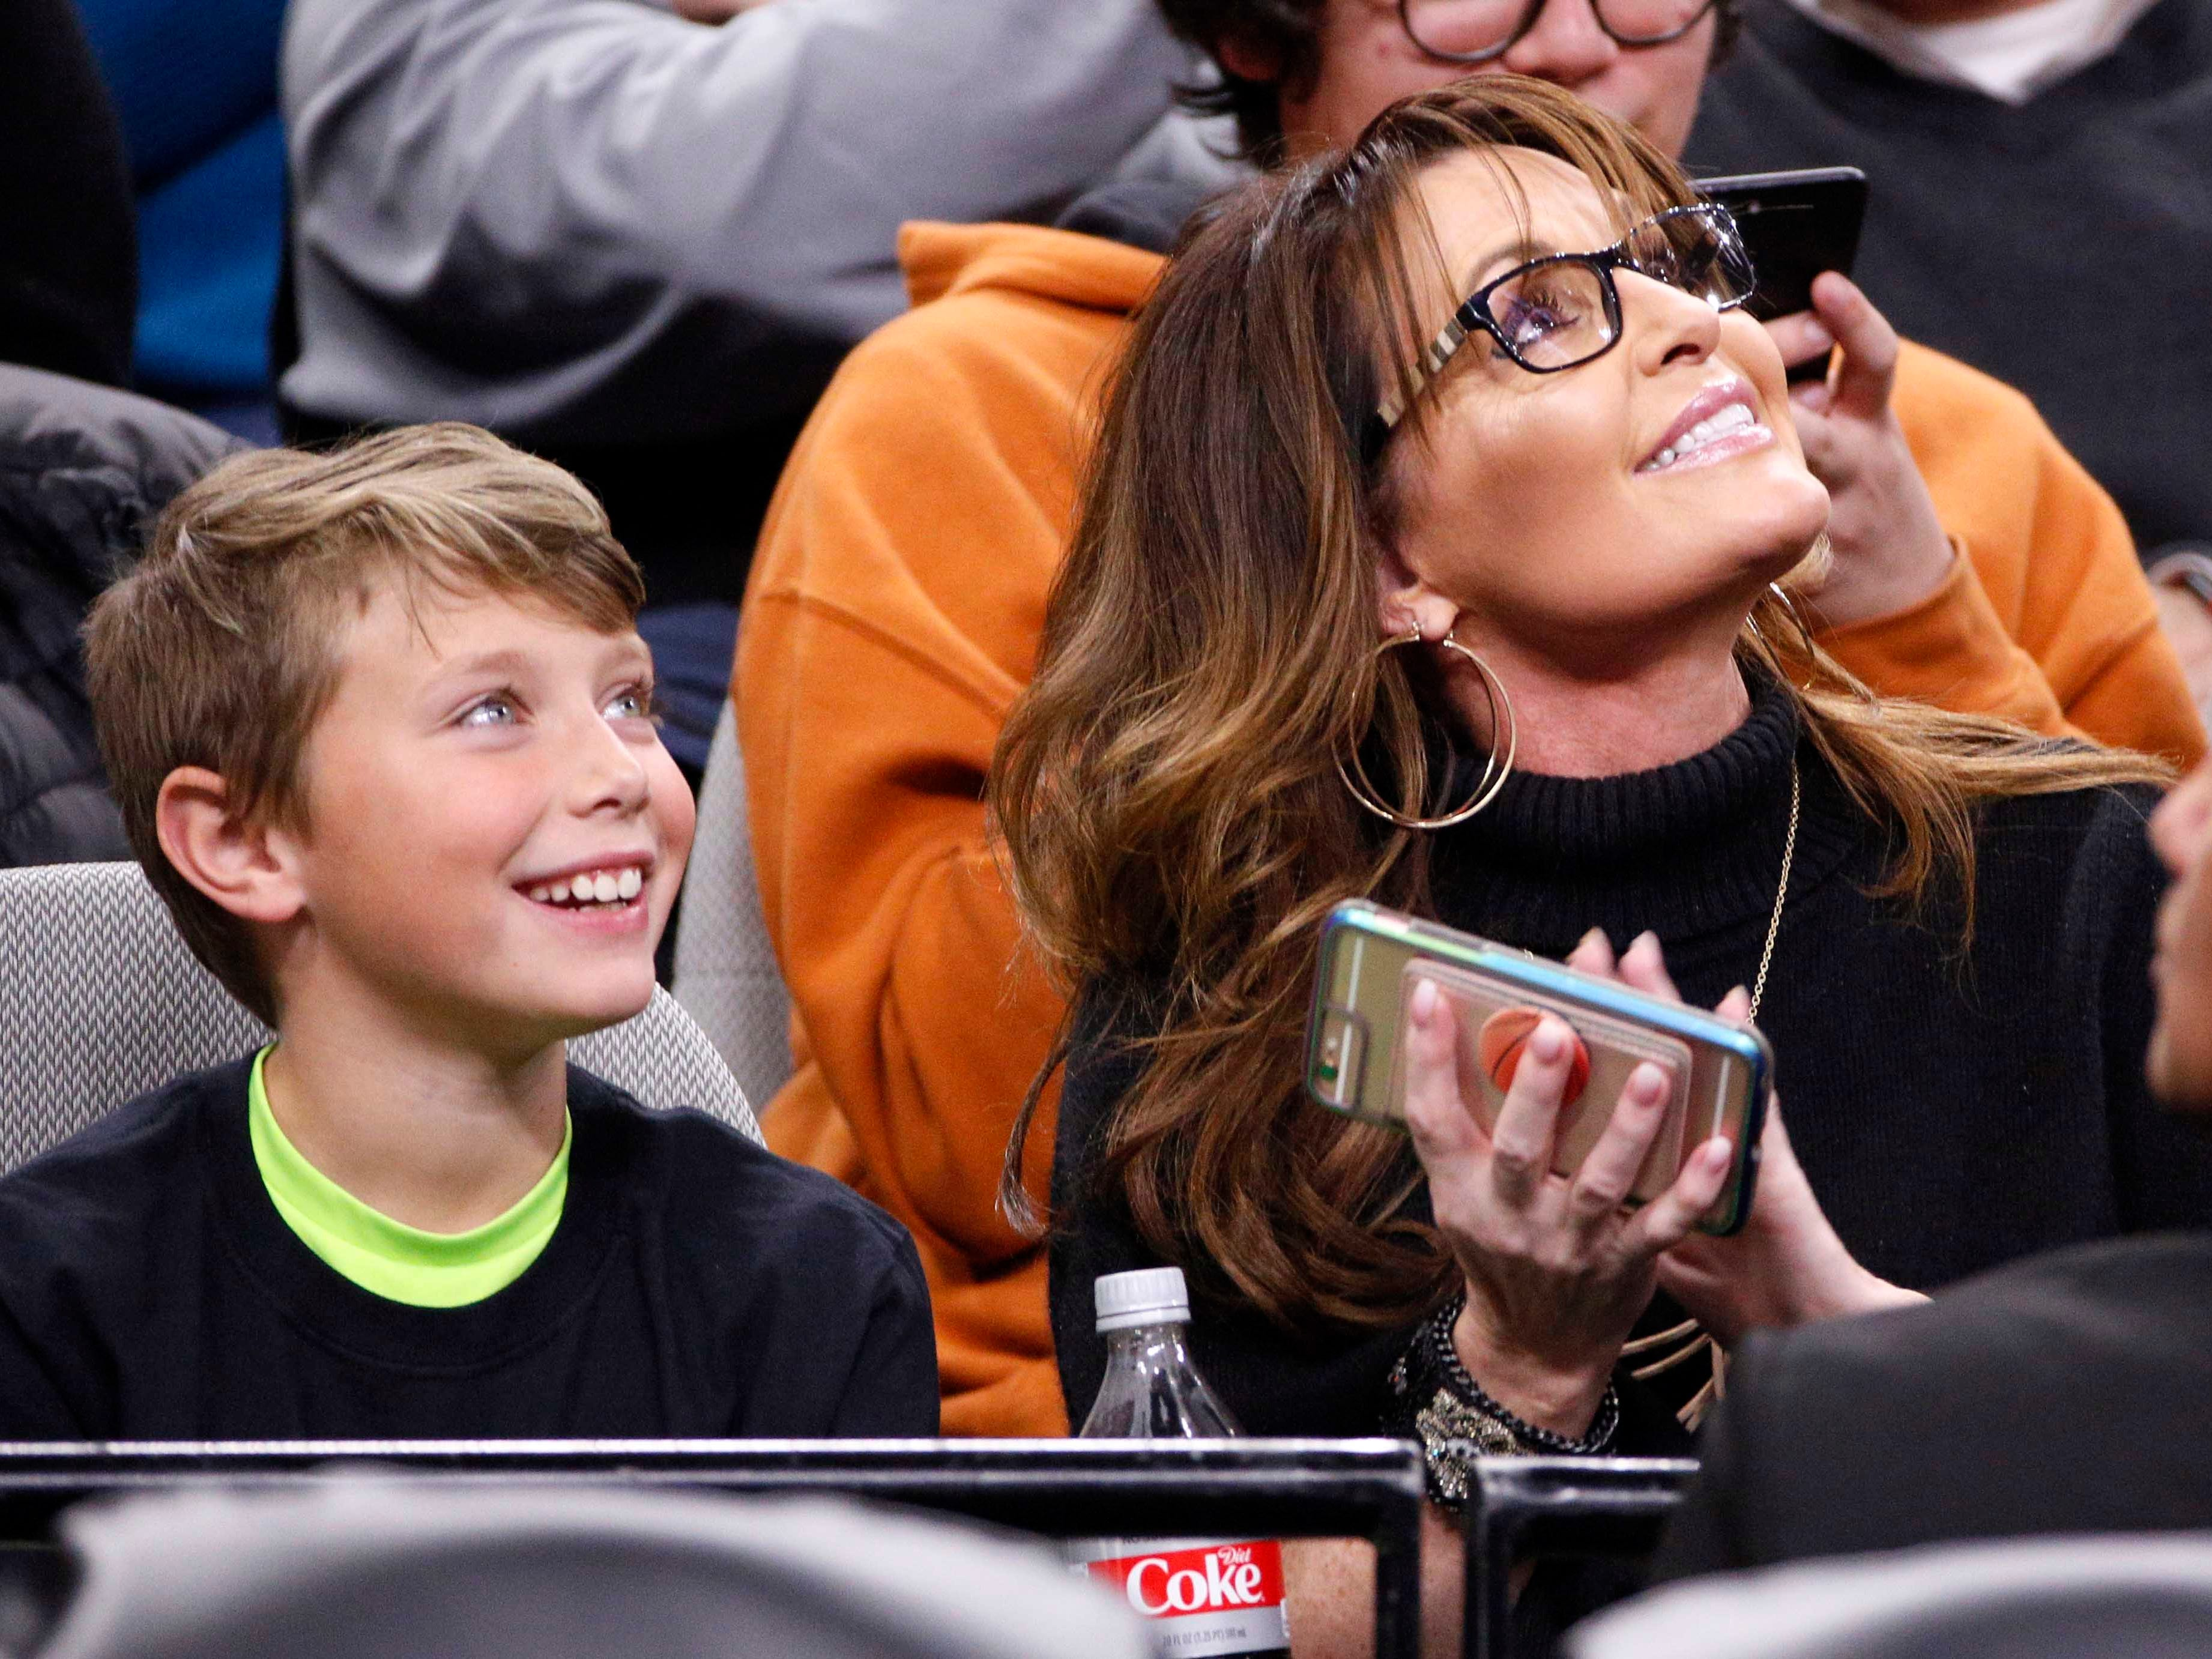 March 4: Former vice presidential candidate Sarah Palin and her grandson Tripp attend the game between the San Antonio Spurs and the Denver Nuggets at AT&T Center.